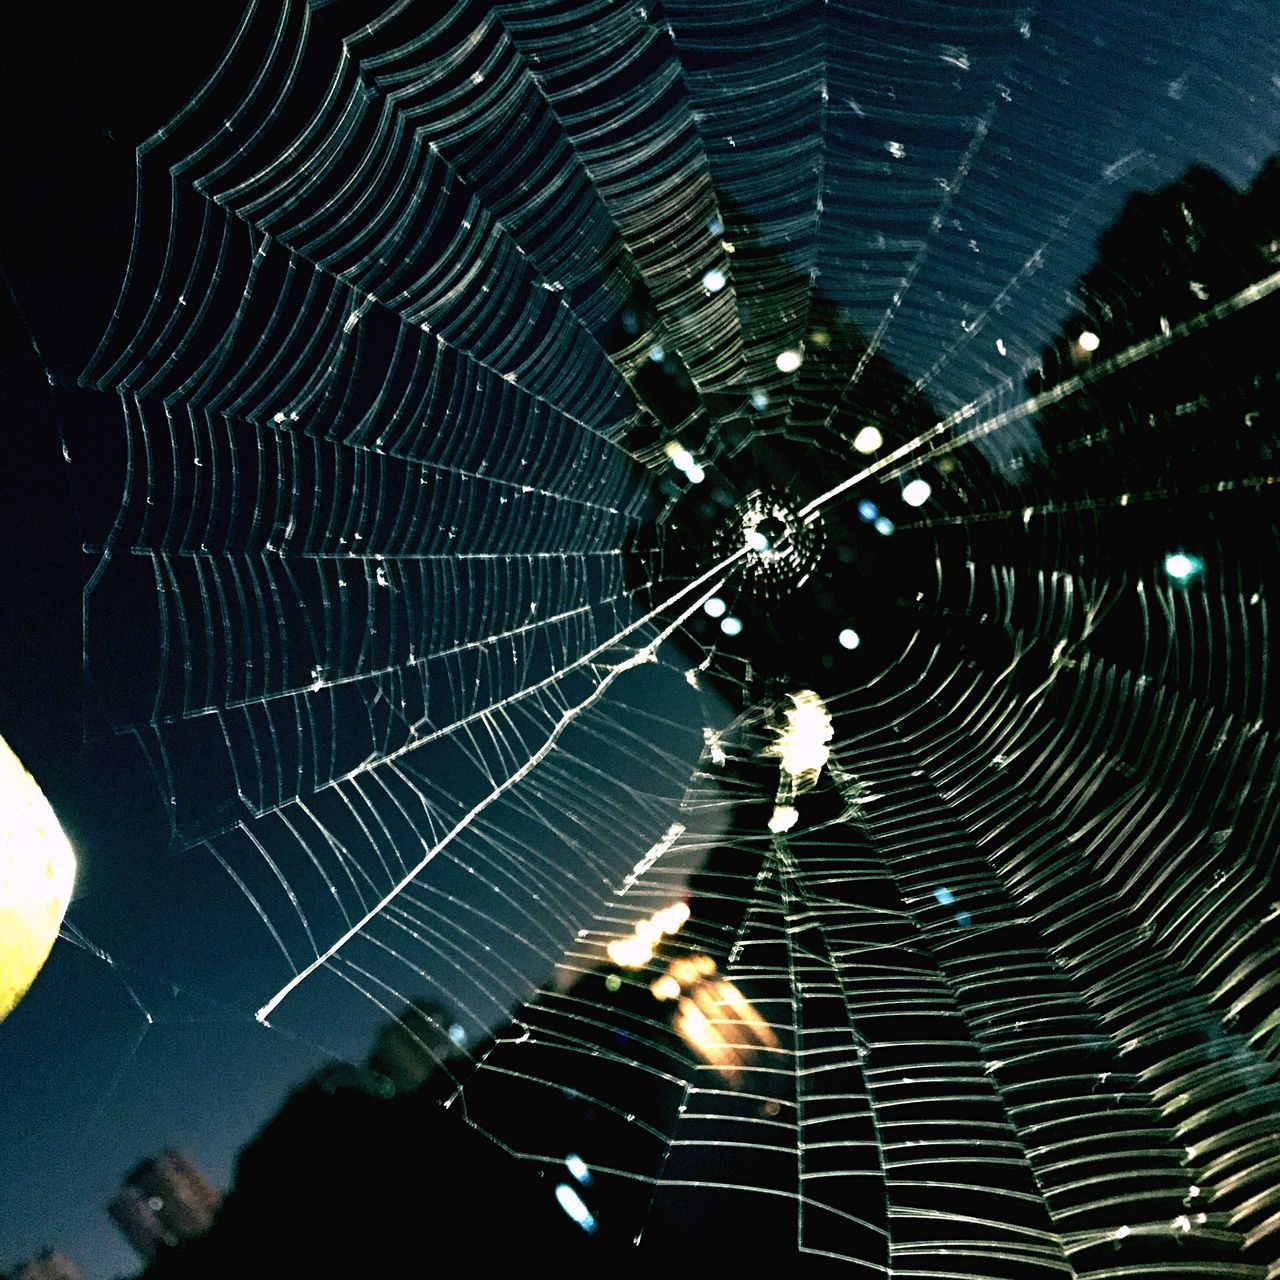 Spider Web Spider Web One Animal Insect Outdoors Animal Themes Backgrounds No People Nature Fragility Close-up Day